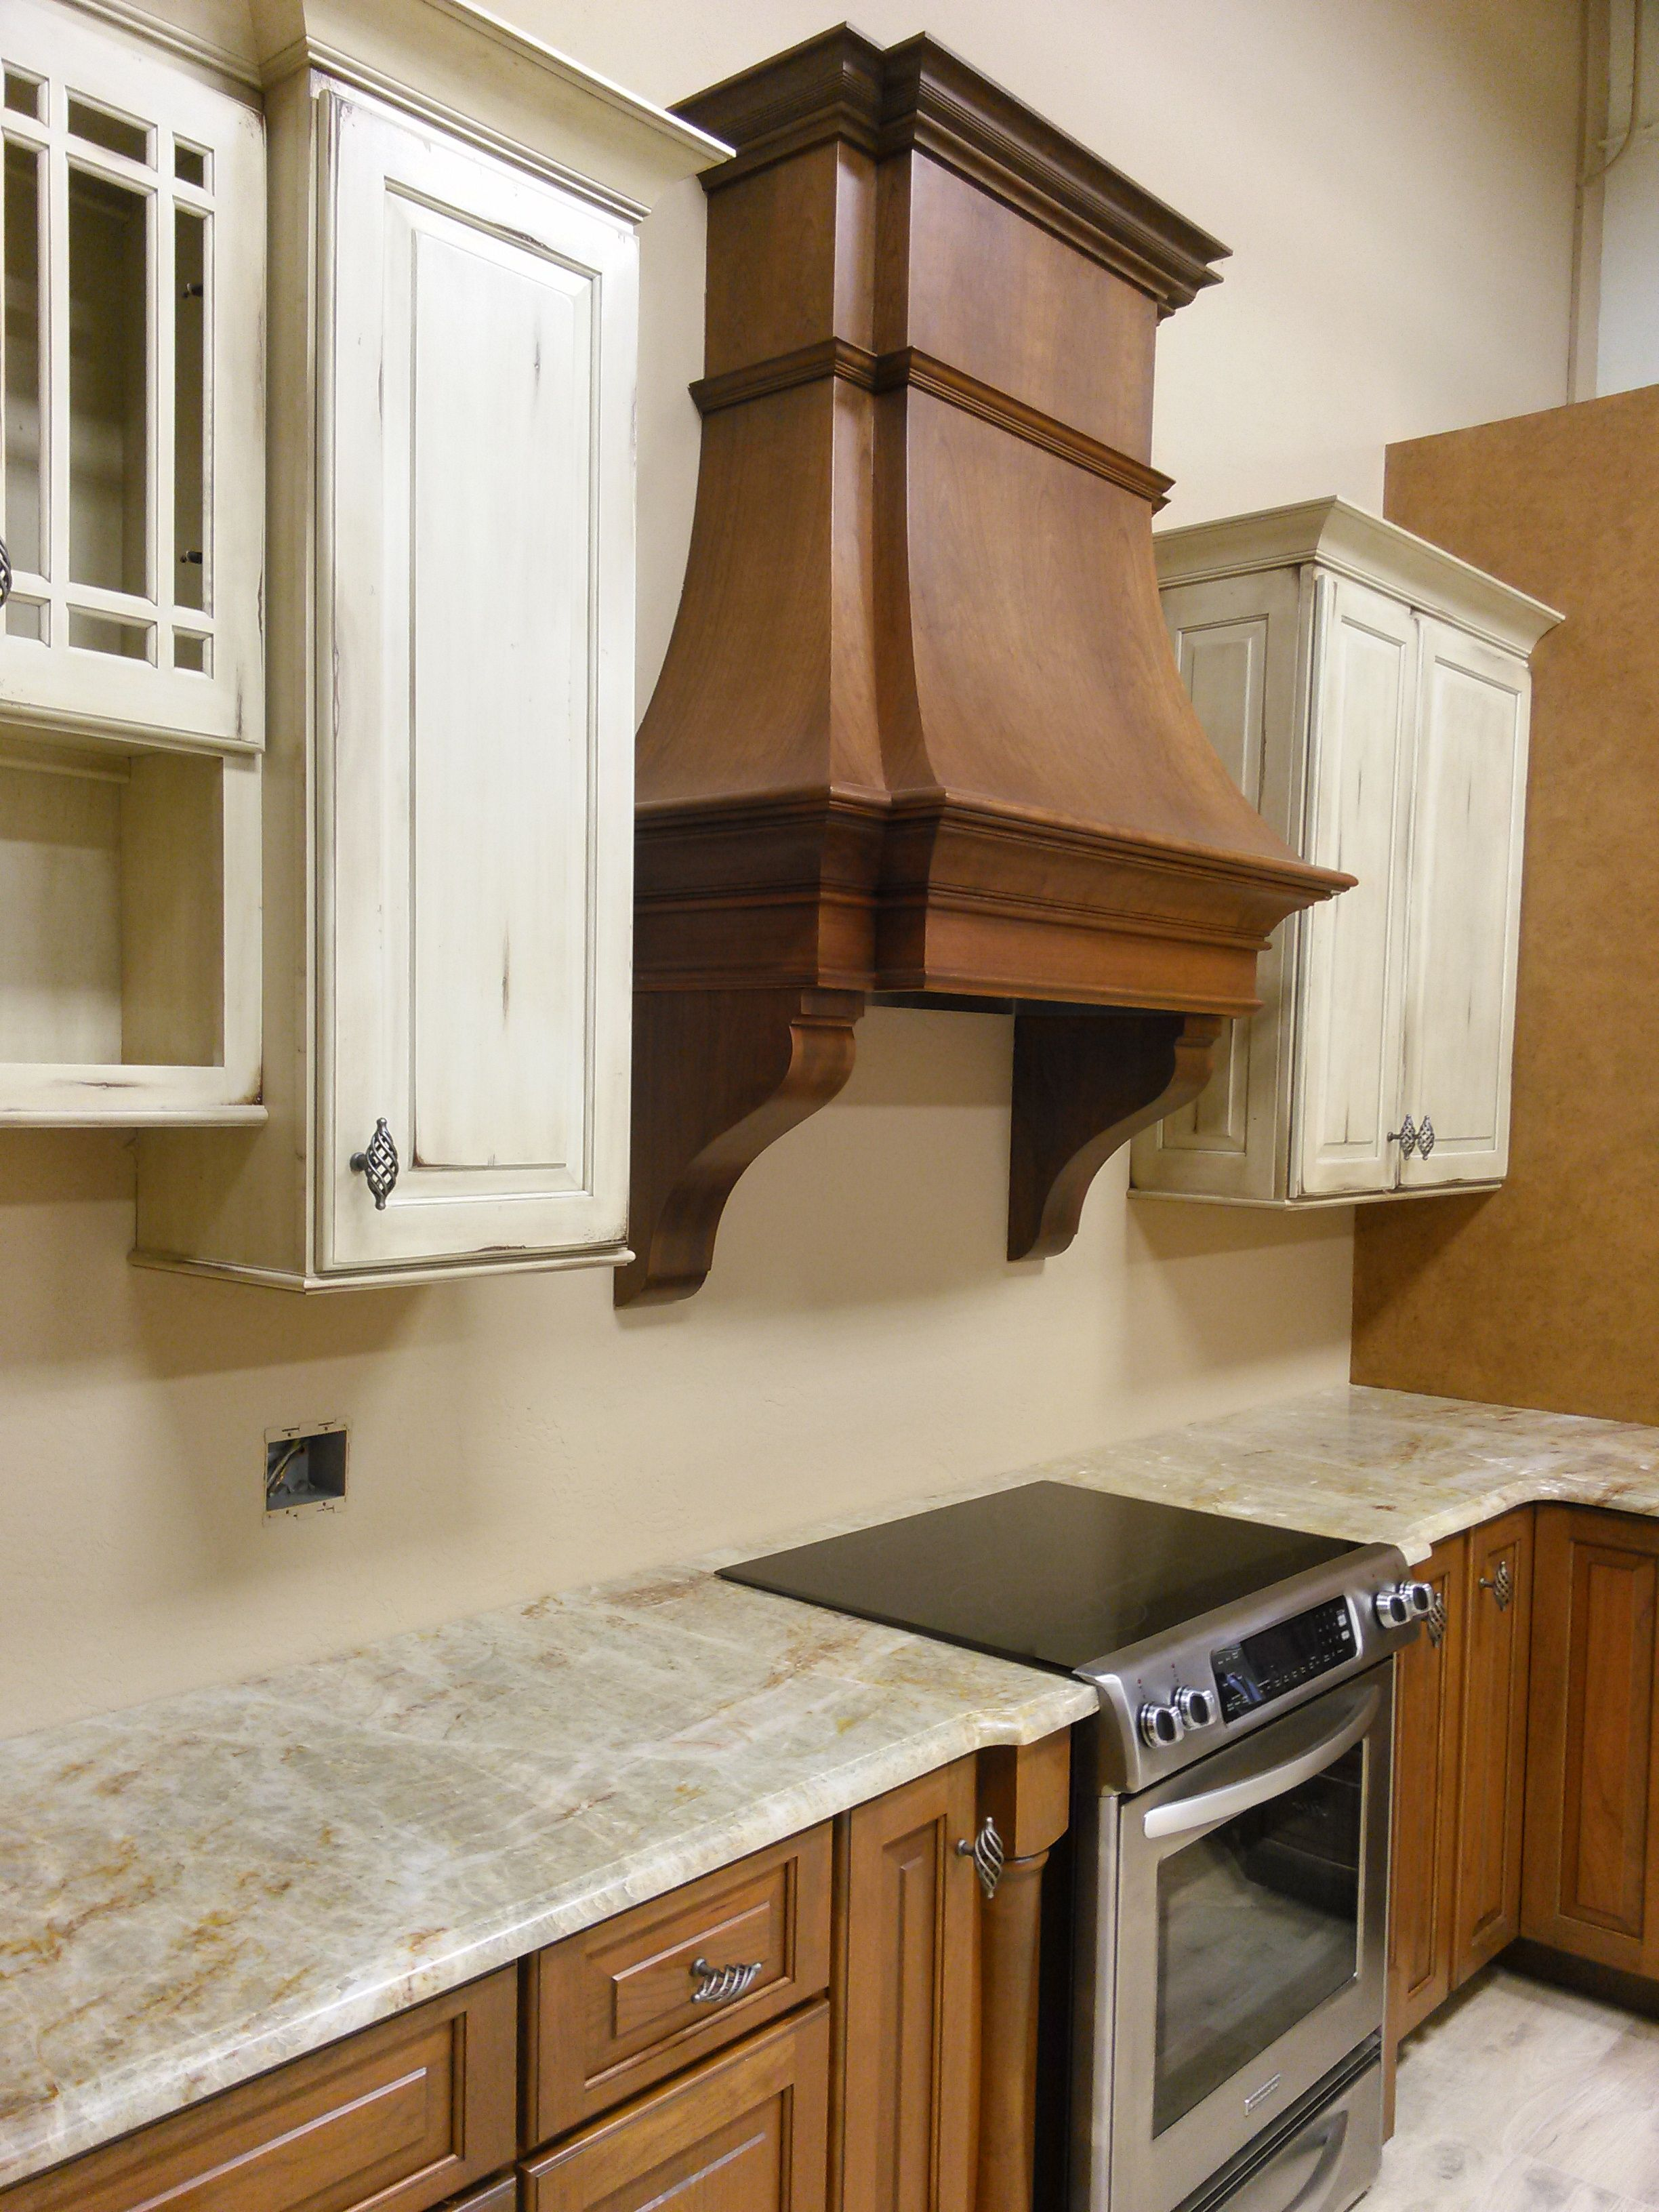 Merveilleux Kitchen Designed By Coastal Kitchen Interiors And The Cabinets Made By  Shiloh Cabinetry. Hood And